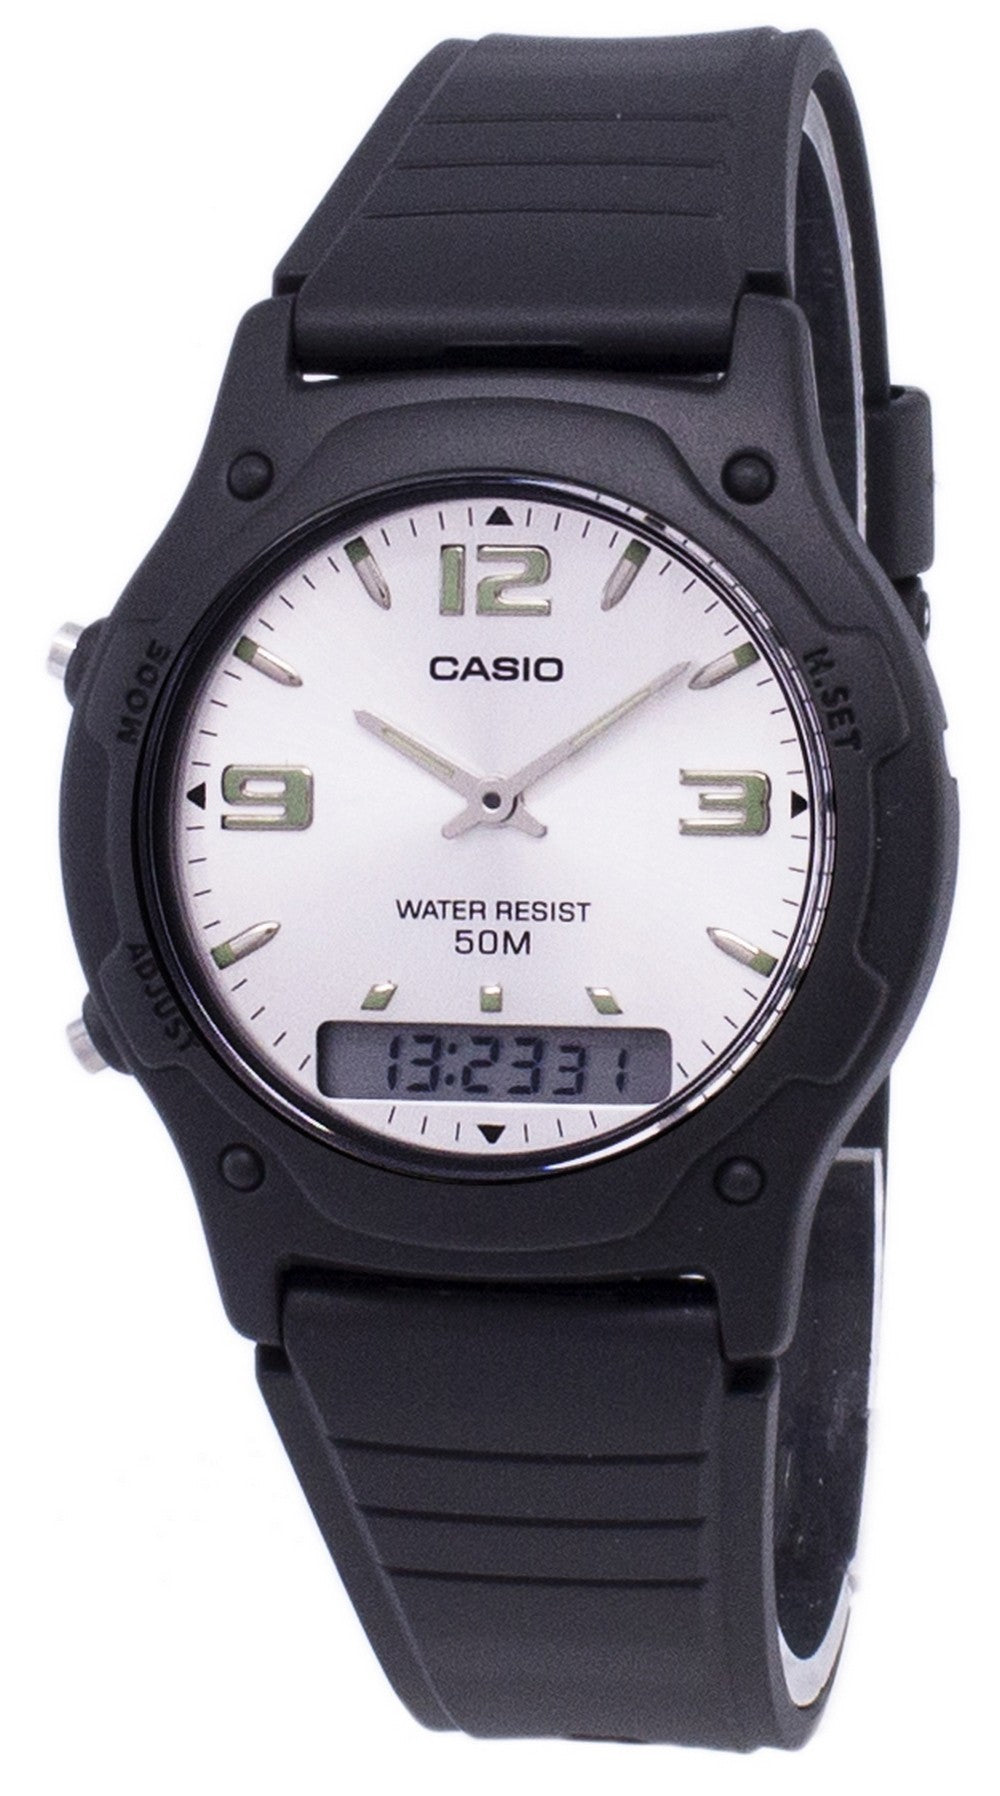 Casio Analog Digital Quartz Dual Time AW-49HE-7AVDF AW-49HE-7AV Men's Watch